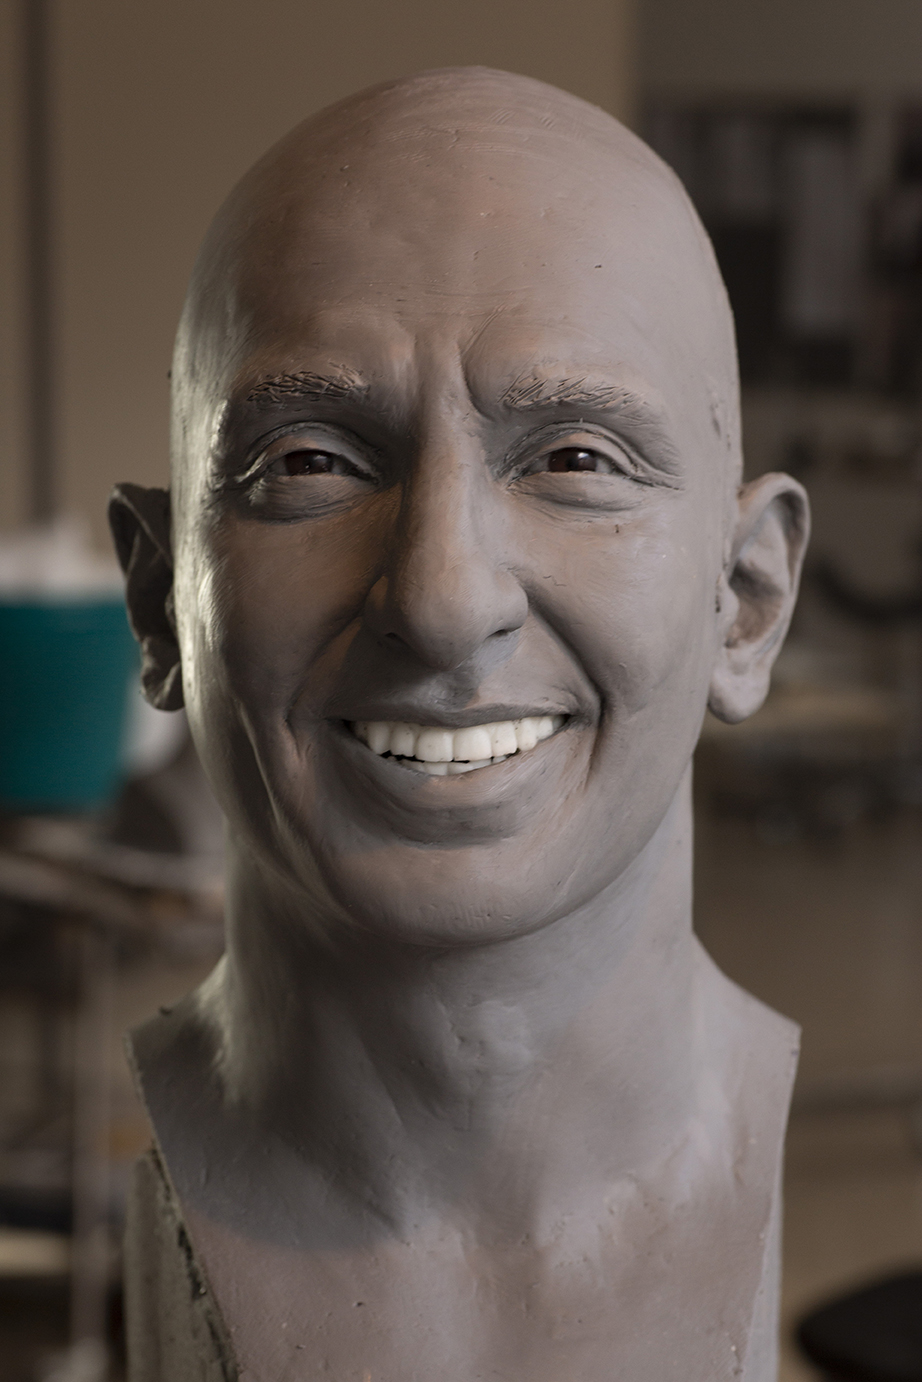 Ranveer Singh - Clay sculpture by Eric Saint Chaffray - Credit Musée Grévin